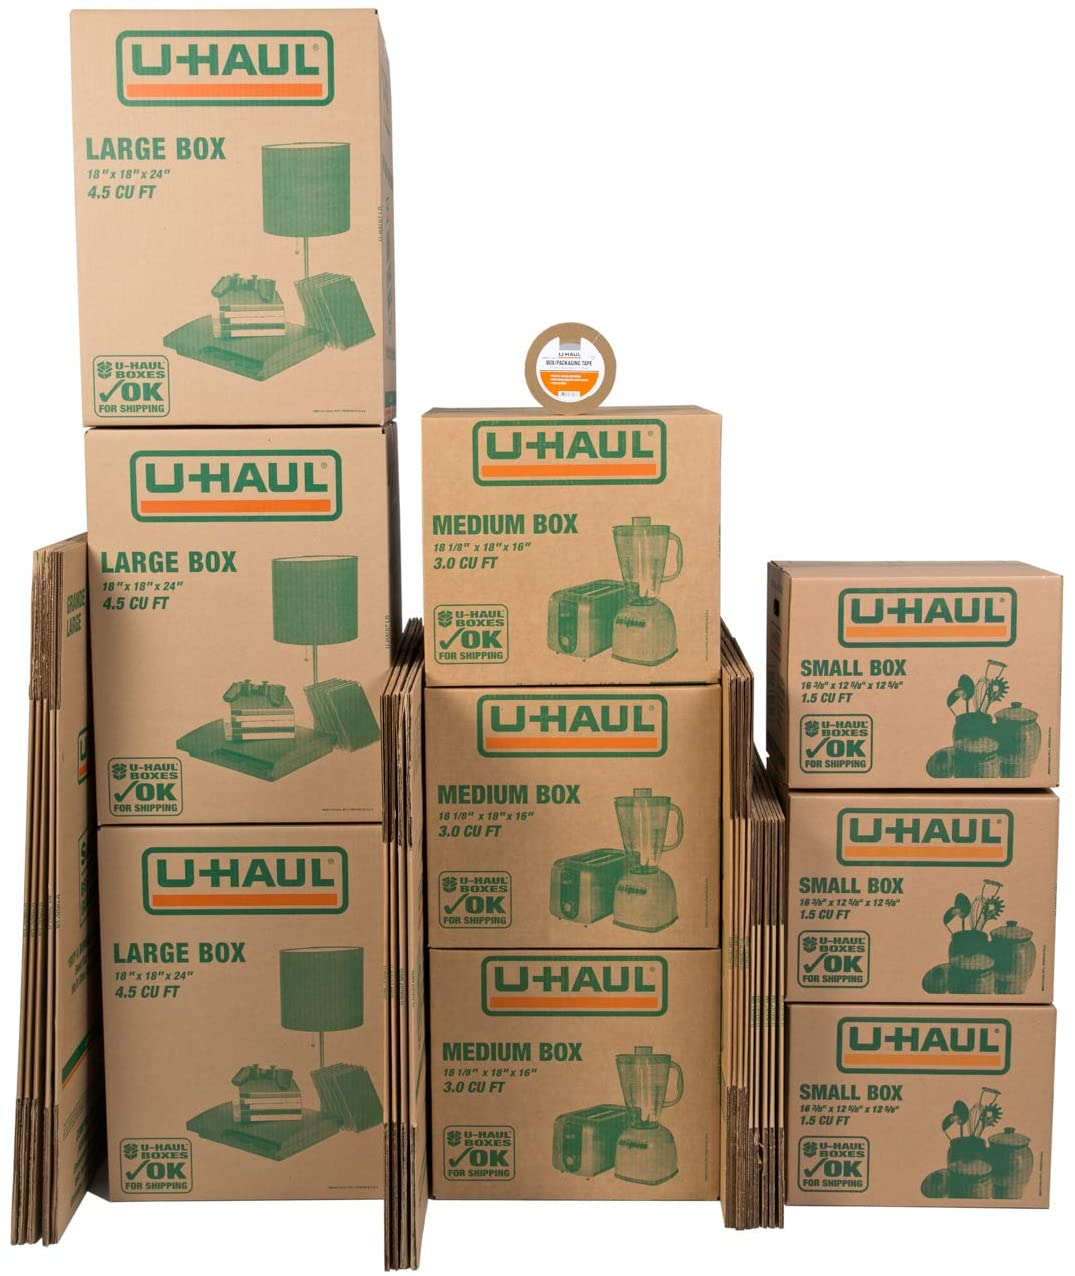 U-Haul Moving Box Variety Pack 10 Small, 10 Medium, and 5 Large Boxes - Suitable for Moving, Packing, Shipping, and Storage - Bonus Roll of Tape Included